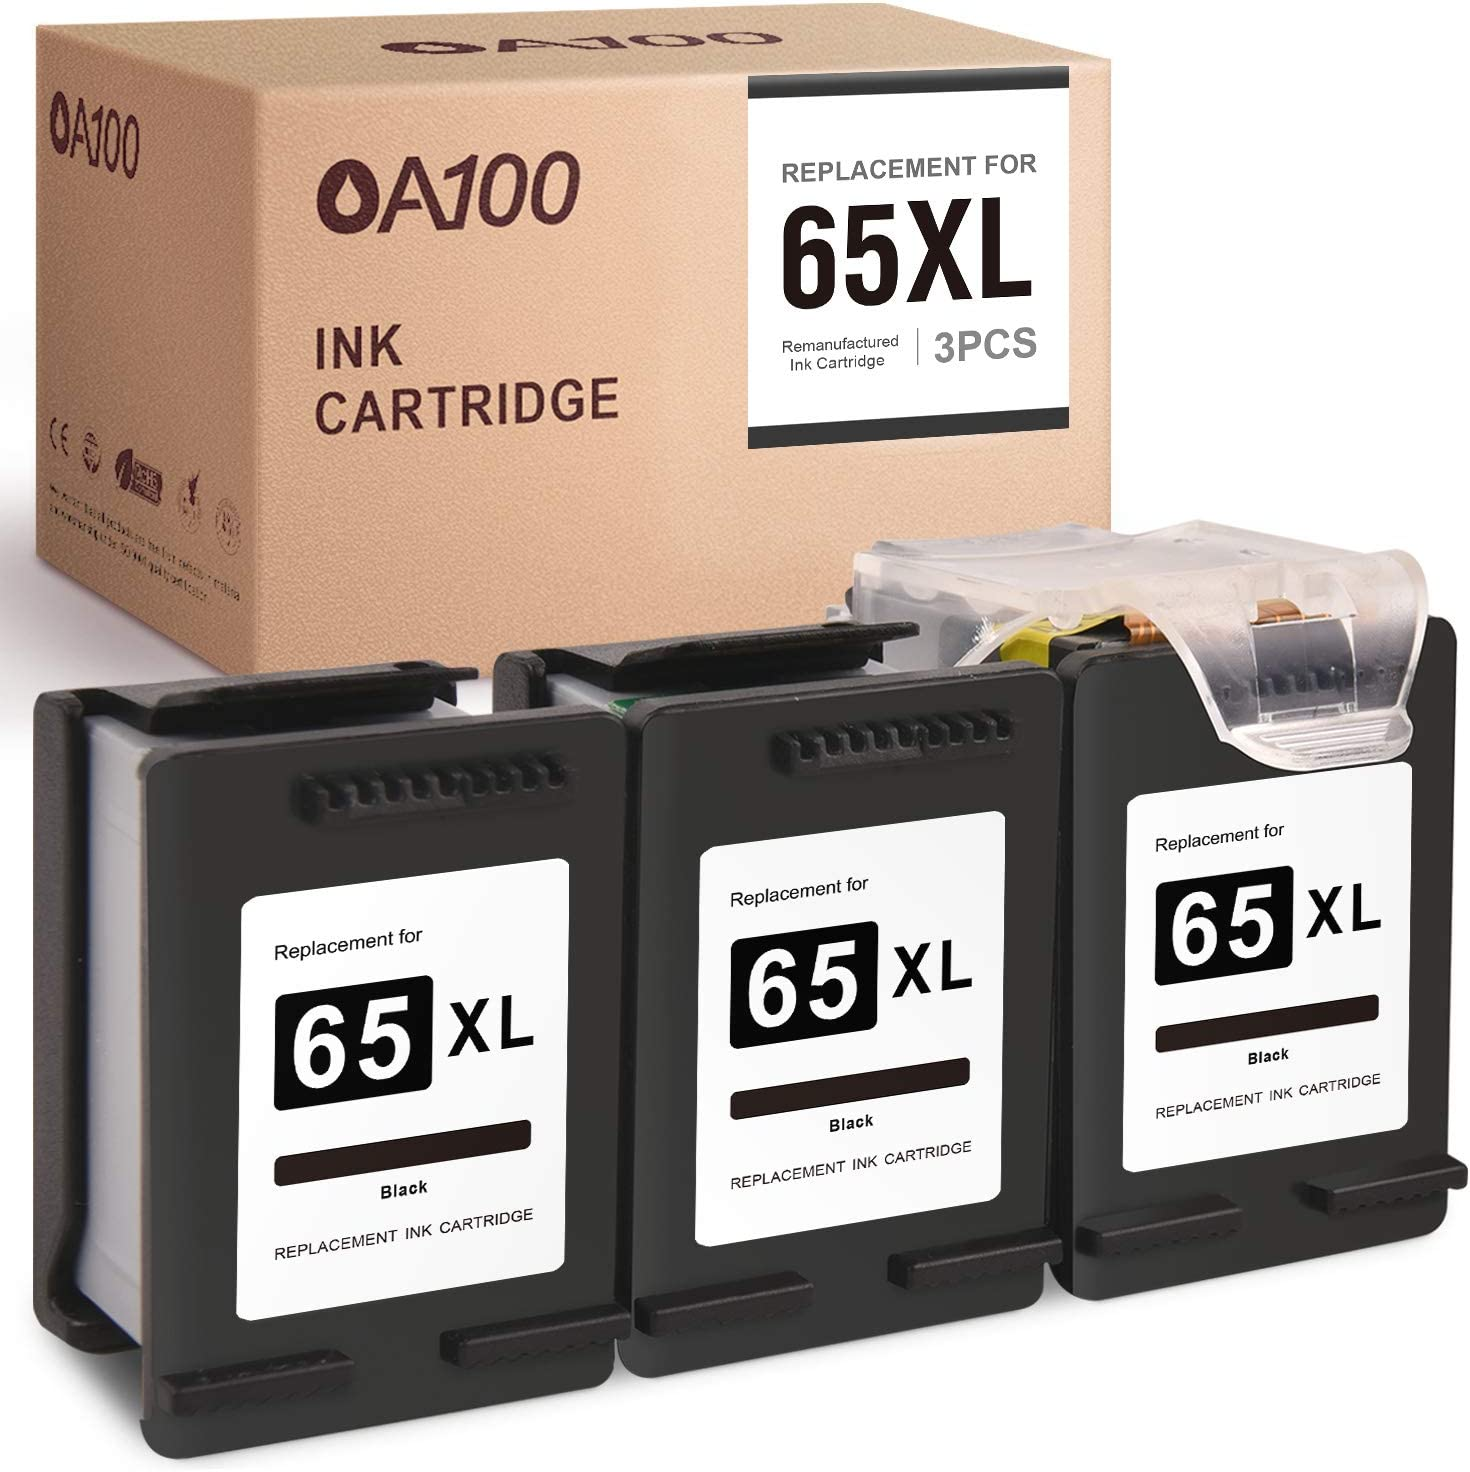 OA100 Remanufactured Ink Cartridges Replacement for HP 65XL 65 XL for Envy 5055 5052 5010 5030 DeskJet 3752 2622 3755 2652 2655 3758 3720 2630 3722 2624 (Black, 3-Pack)